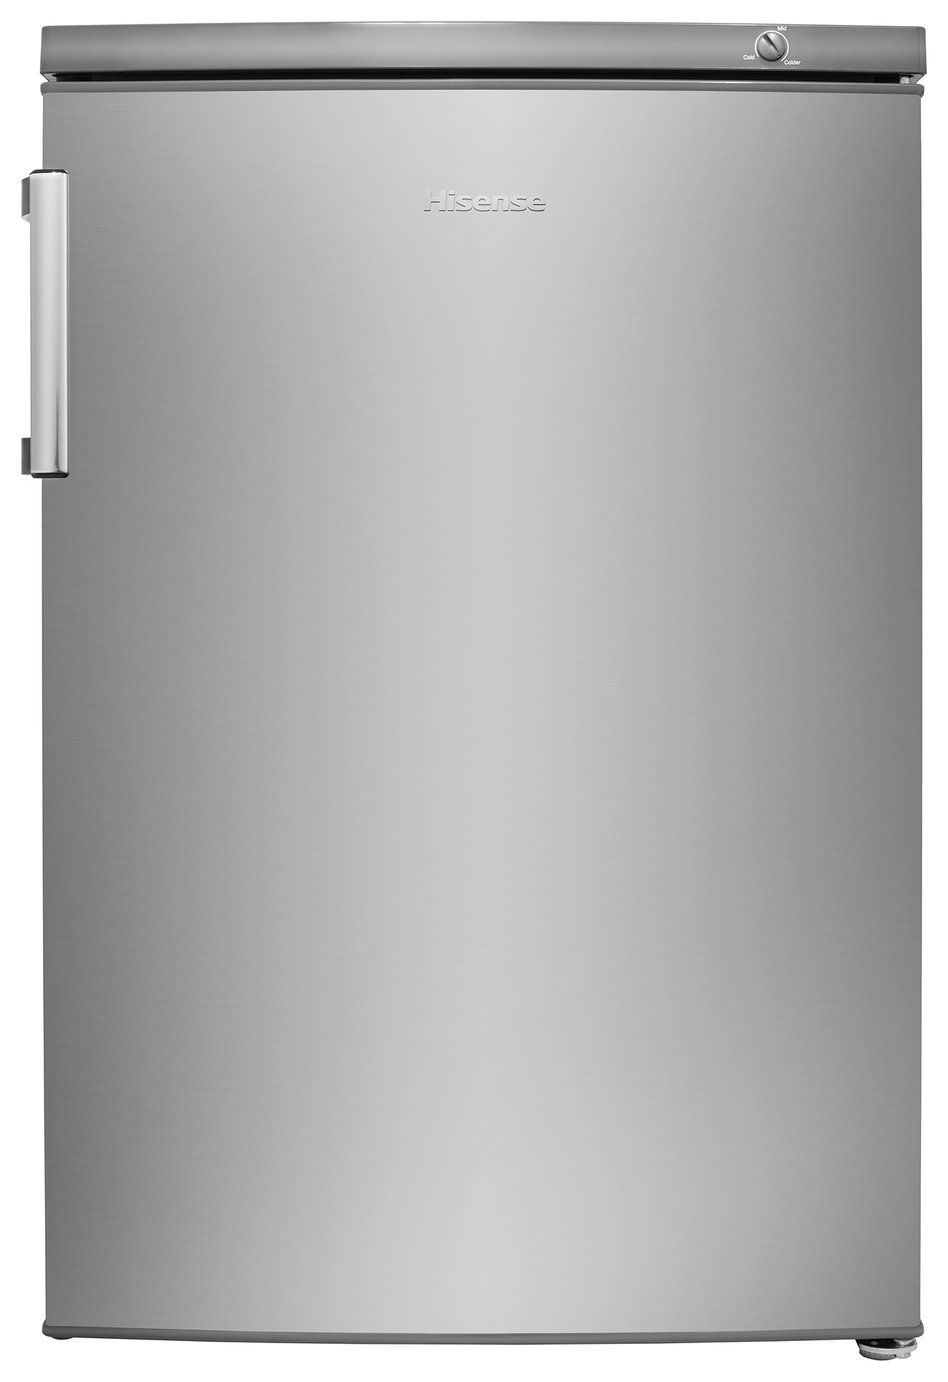 Hisense FV105D4BC21 Under Counter Freezer - Stainless Steel